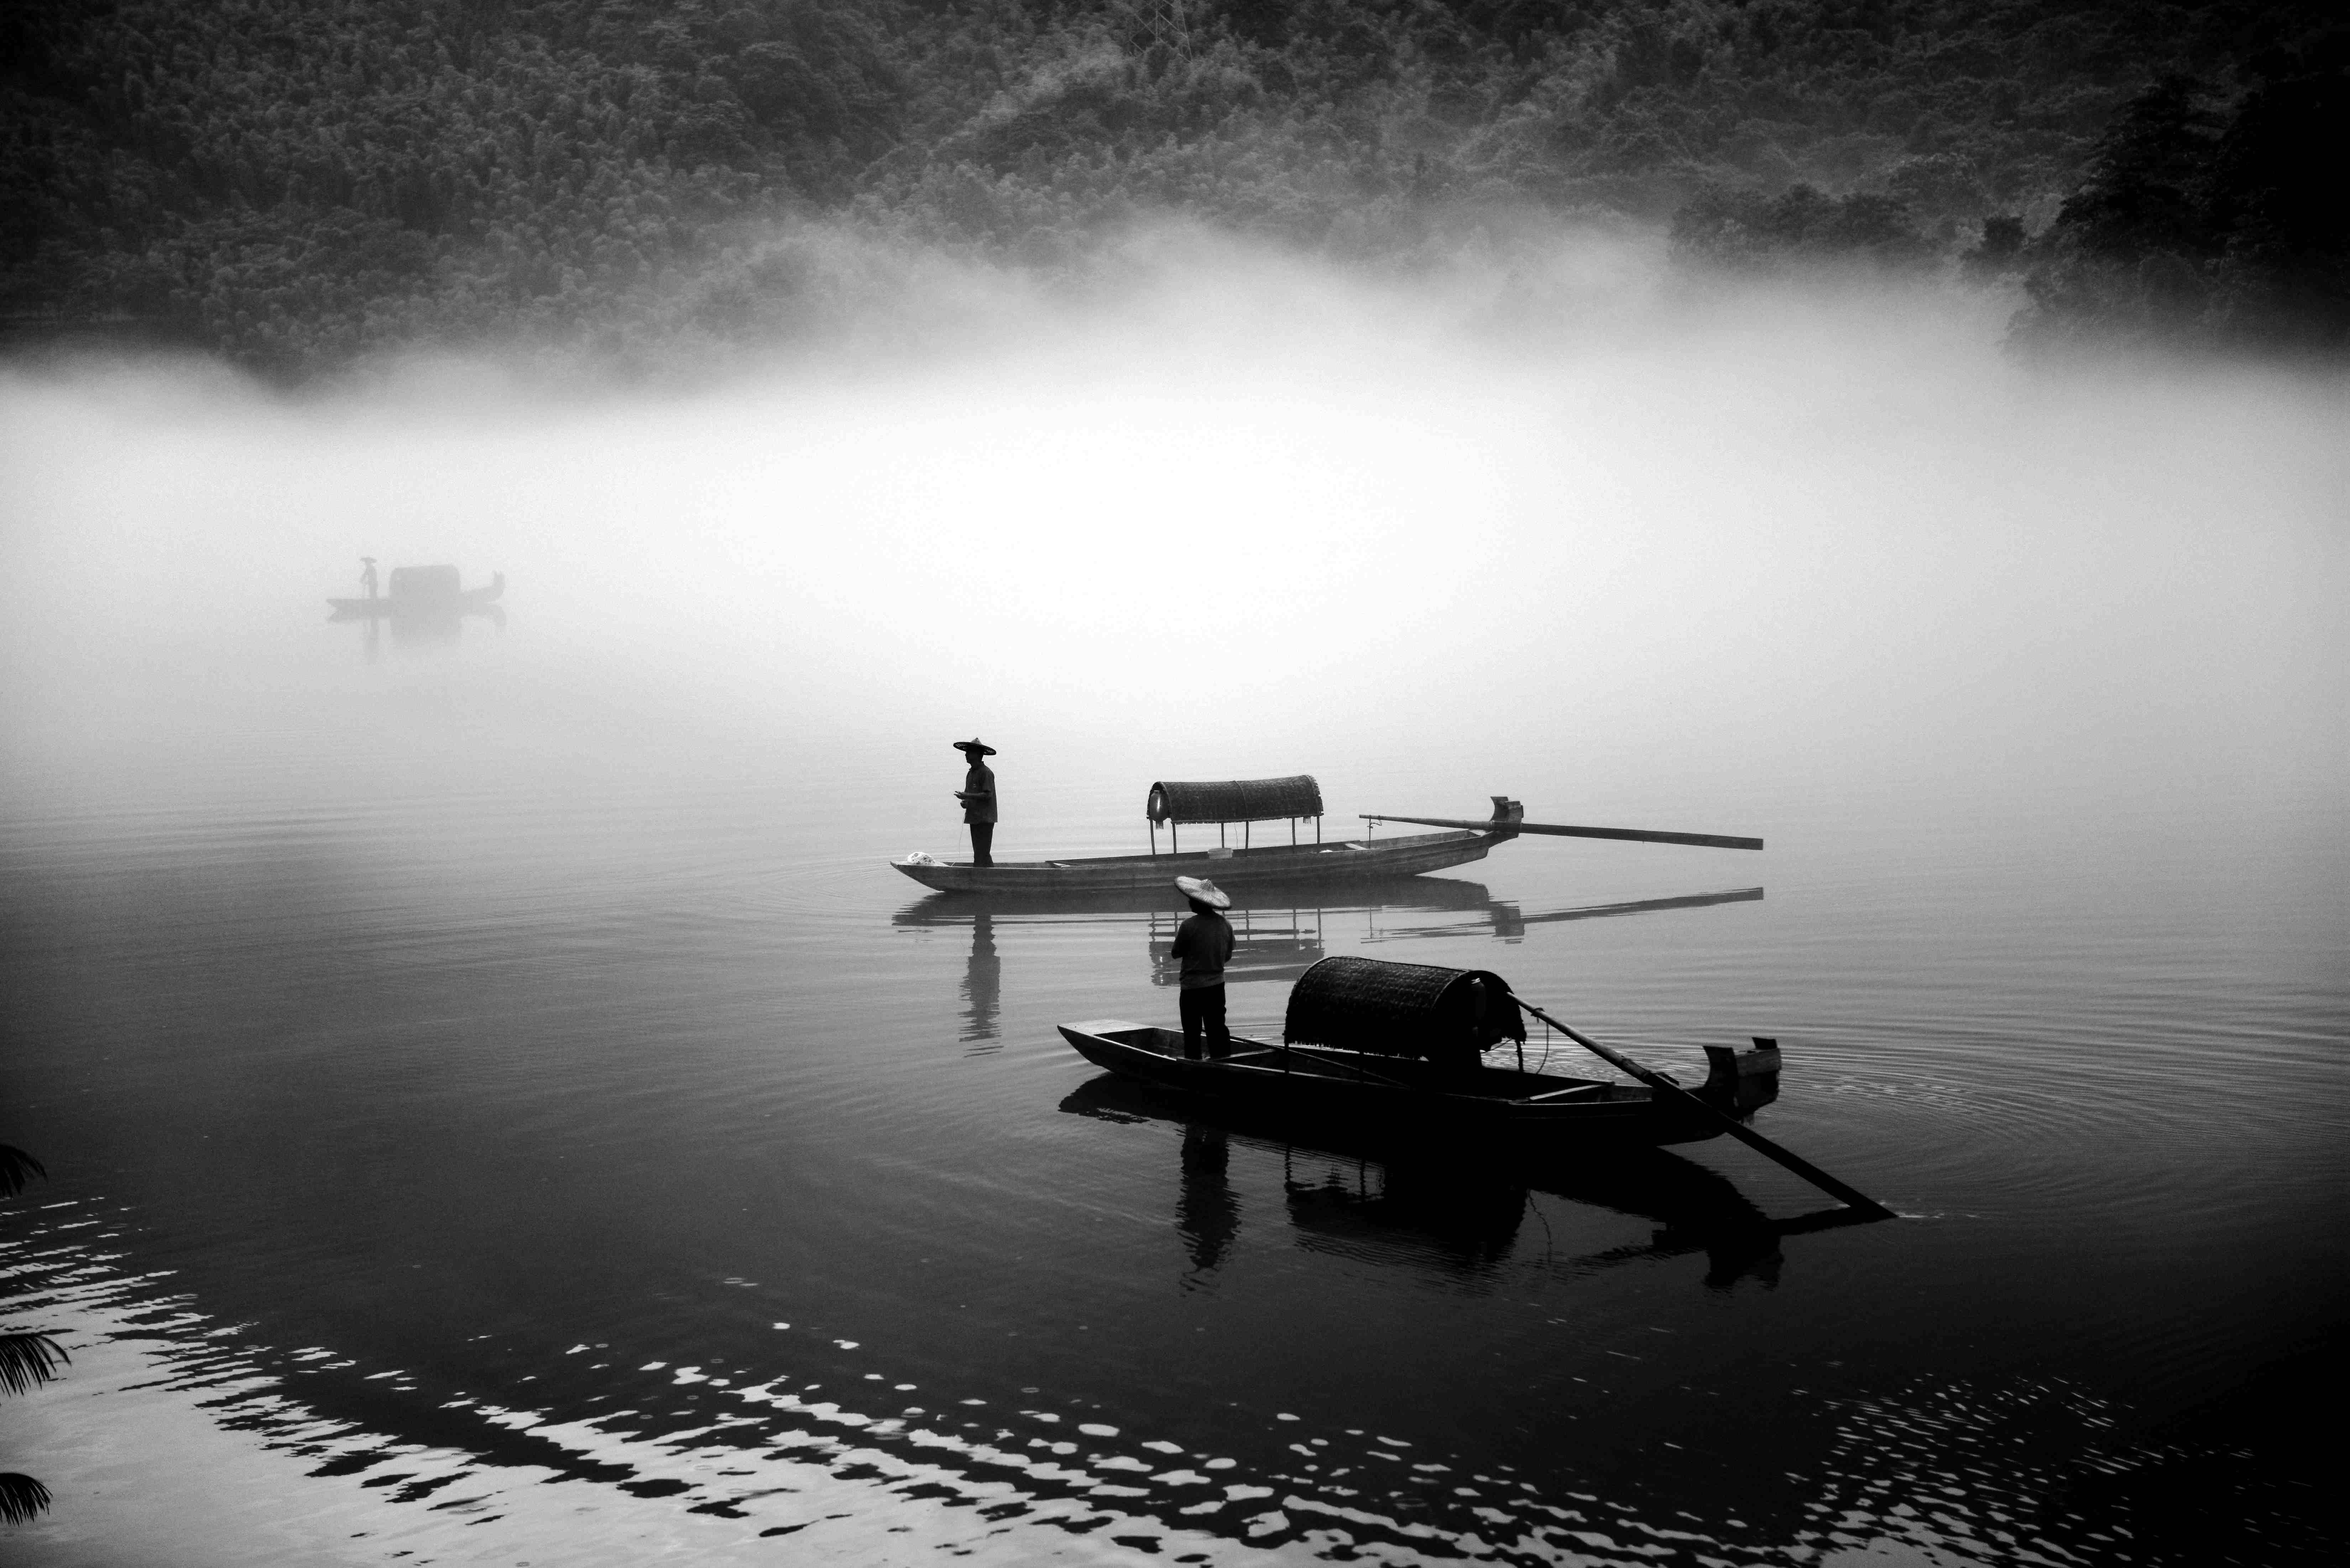 grayscale photo of two row boats